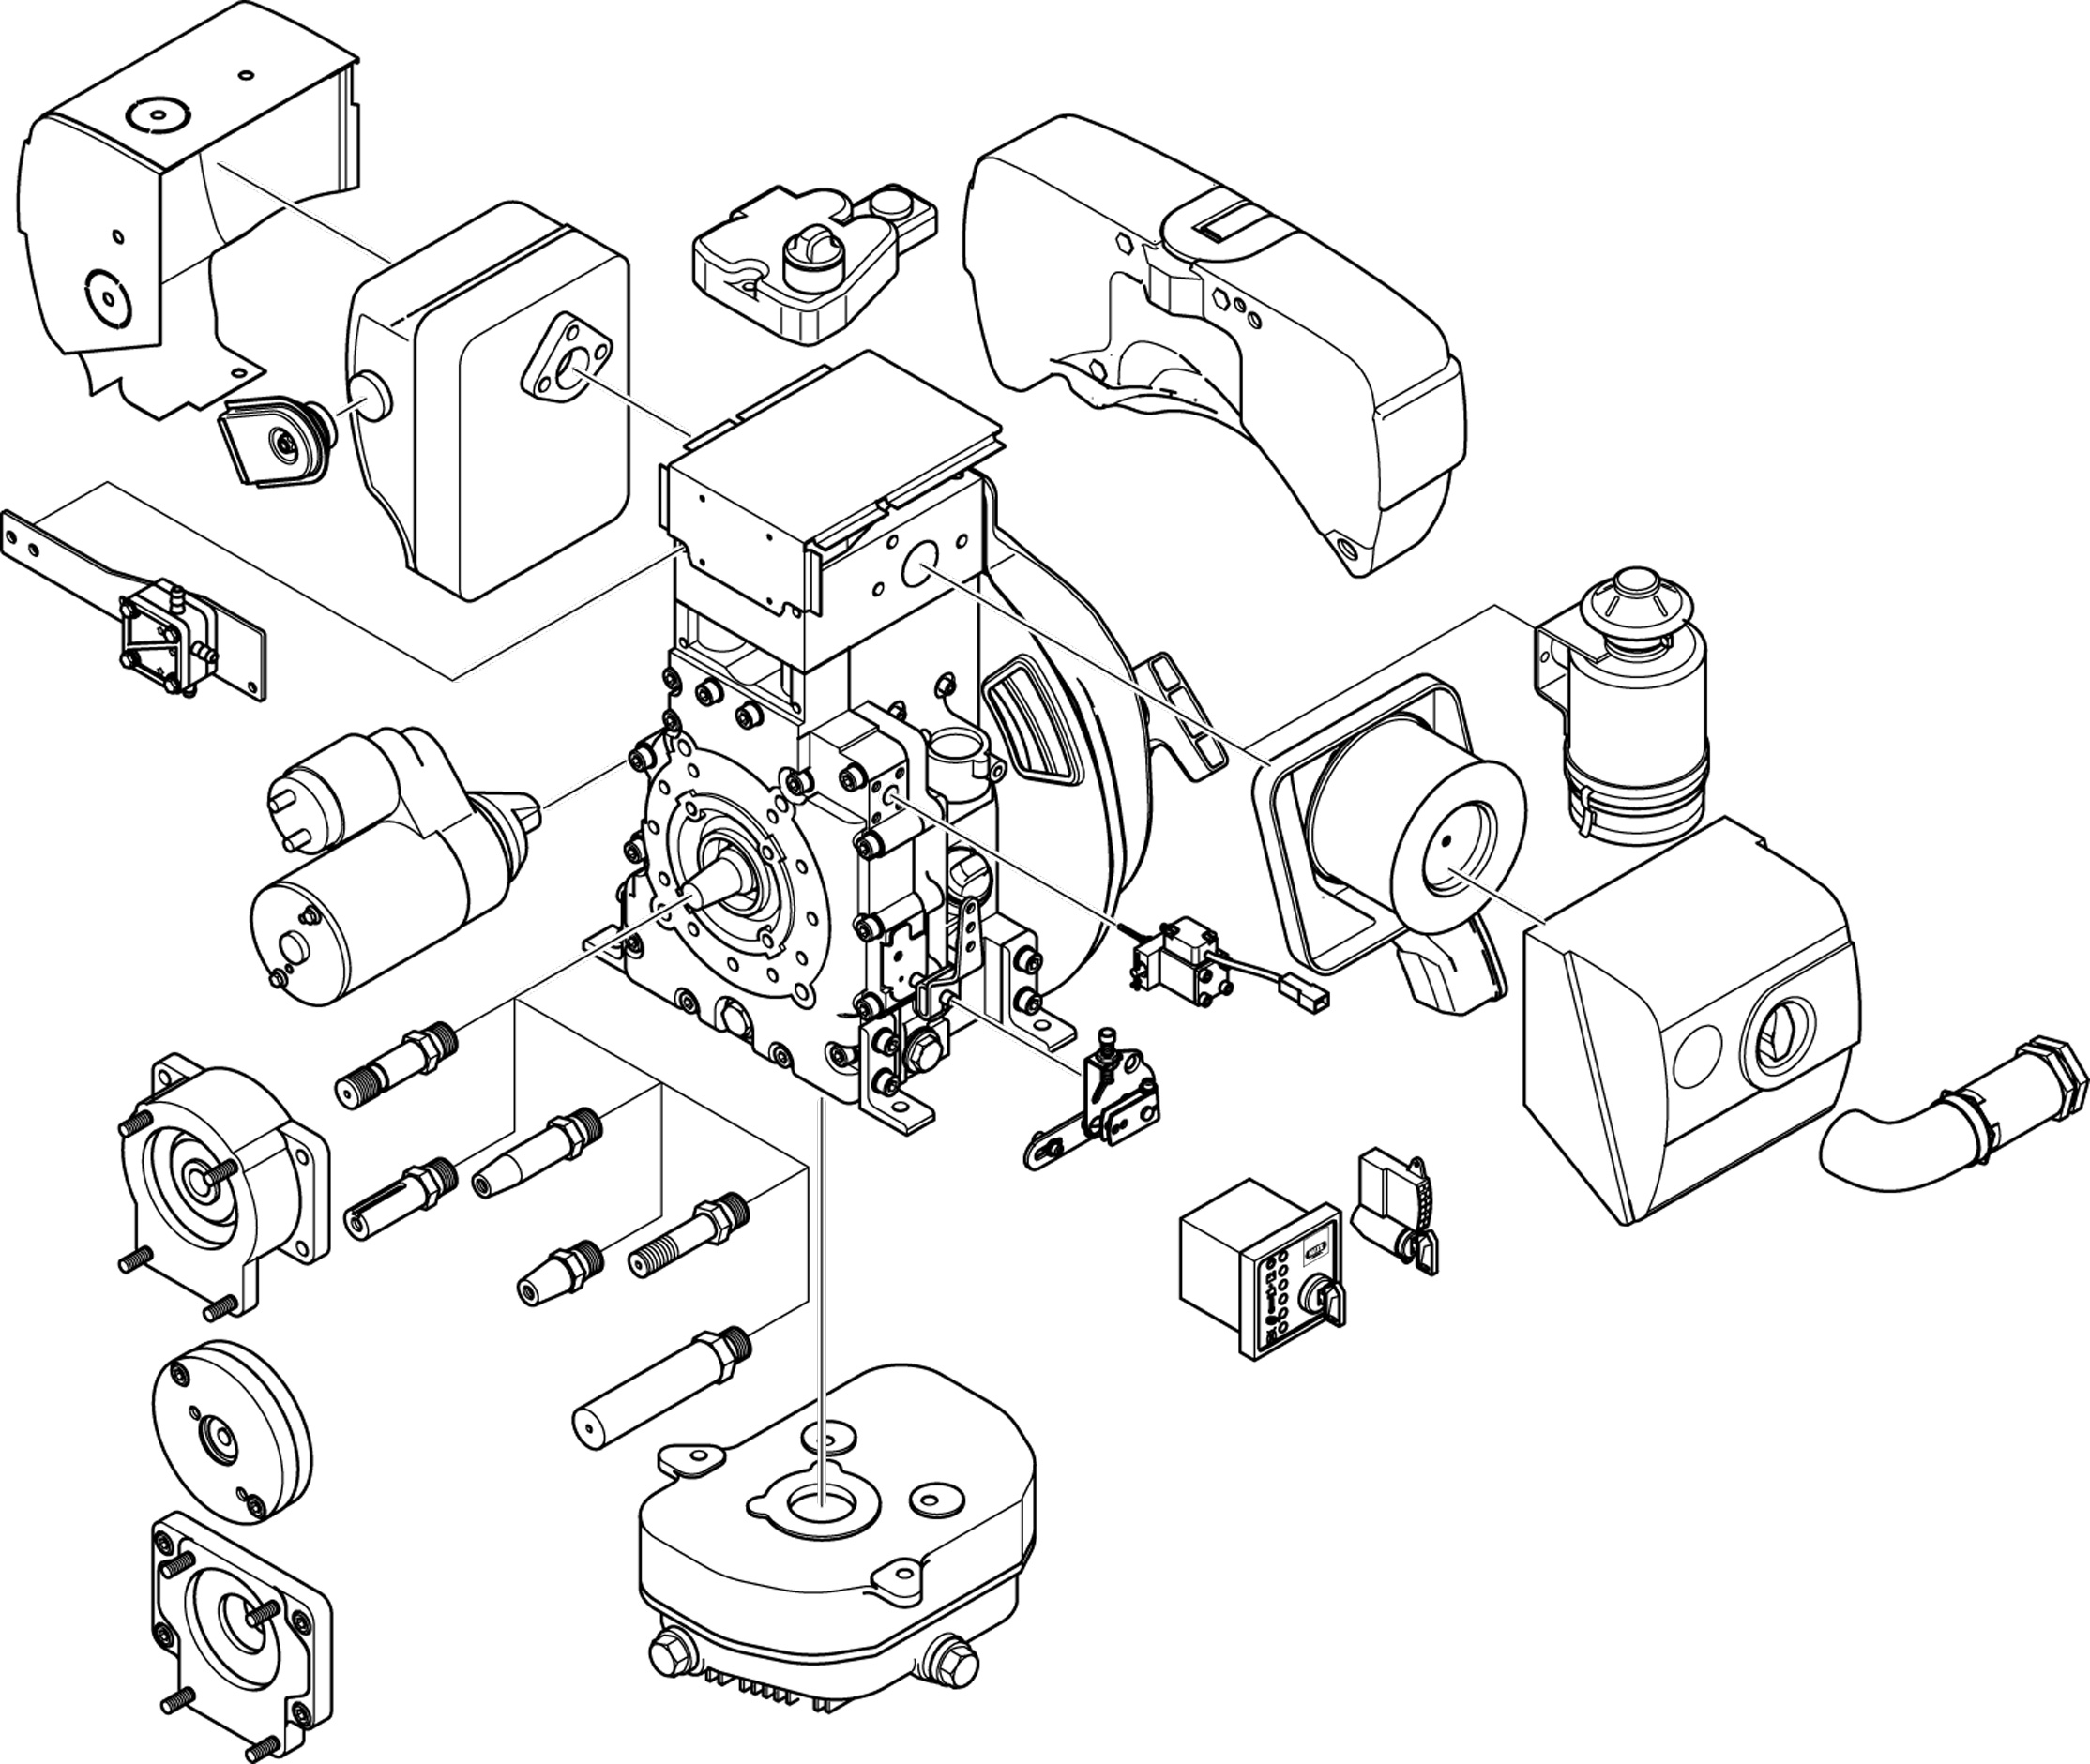 Motorcycle Engine Drawing At Free For Personal Use 2002 Royal Enfield Wiring Diagram Parts